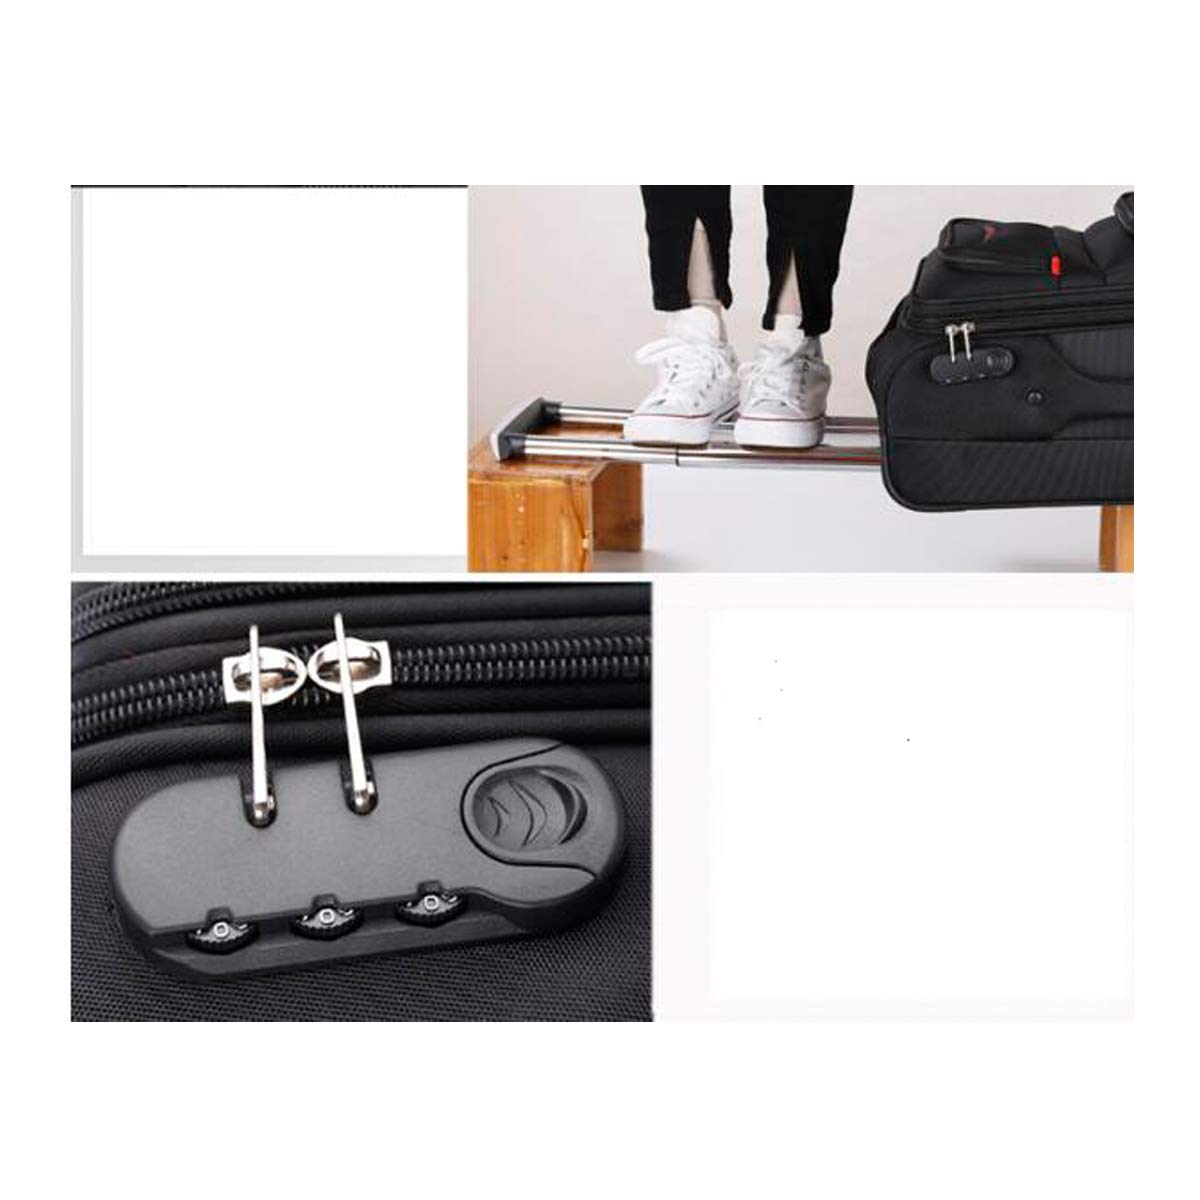 Carrying Case Black Latest Style Best Gift 20//22//24 Travel Organizer Shengshihuizhong Soft Rotating Luggage Simple Style Trolley Case Color : Black, Size : 20